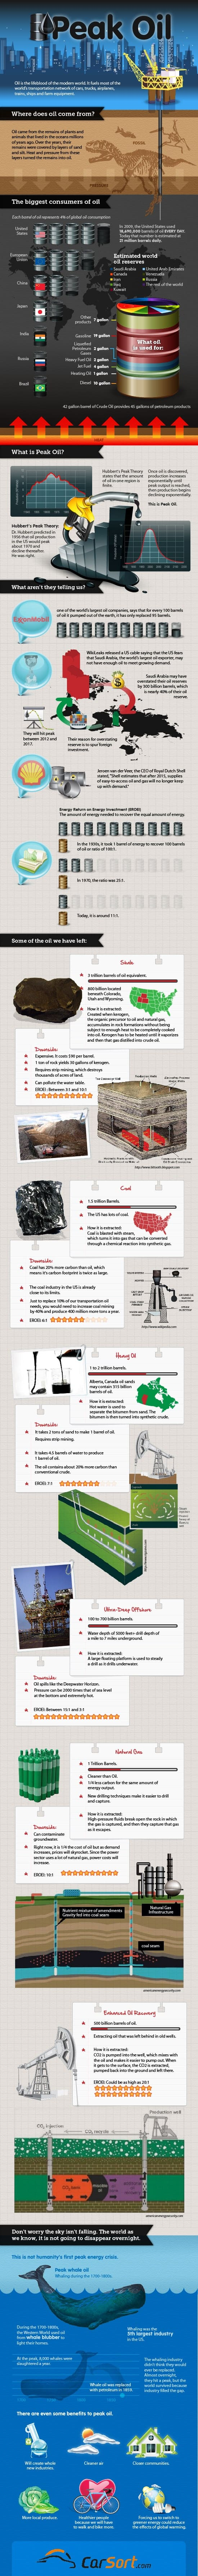 Peak-Oil-Infographic